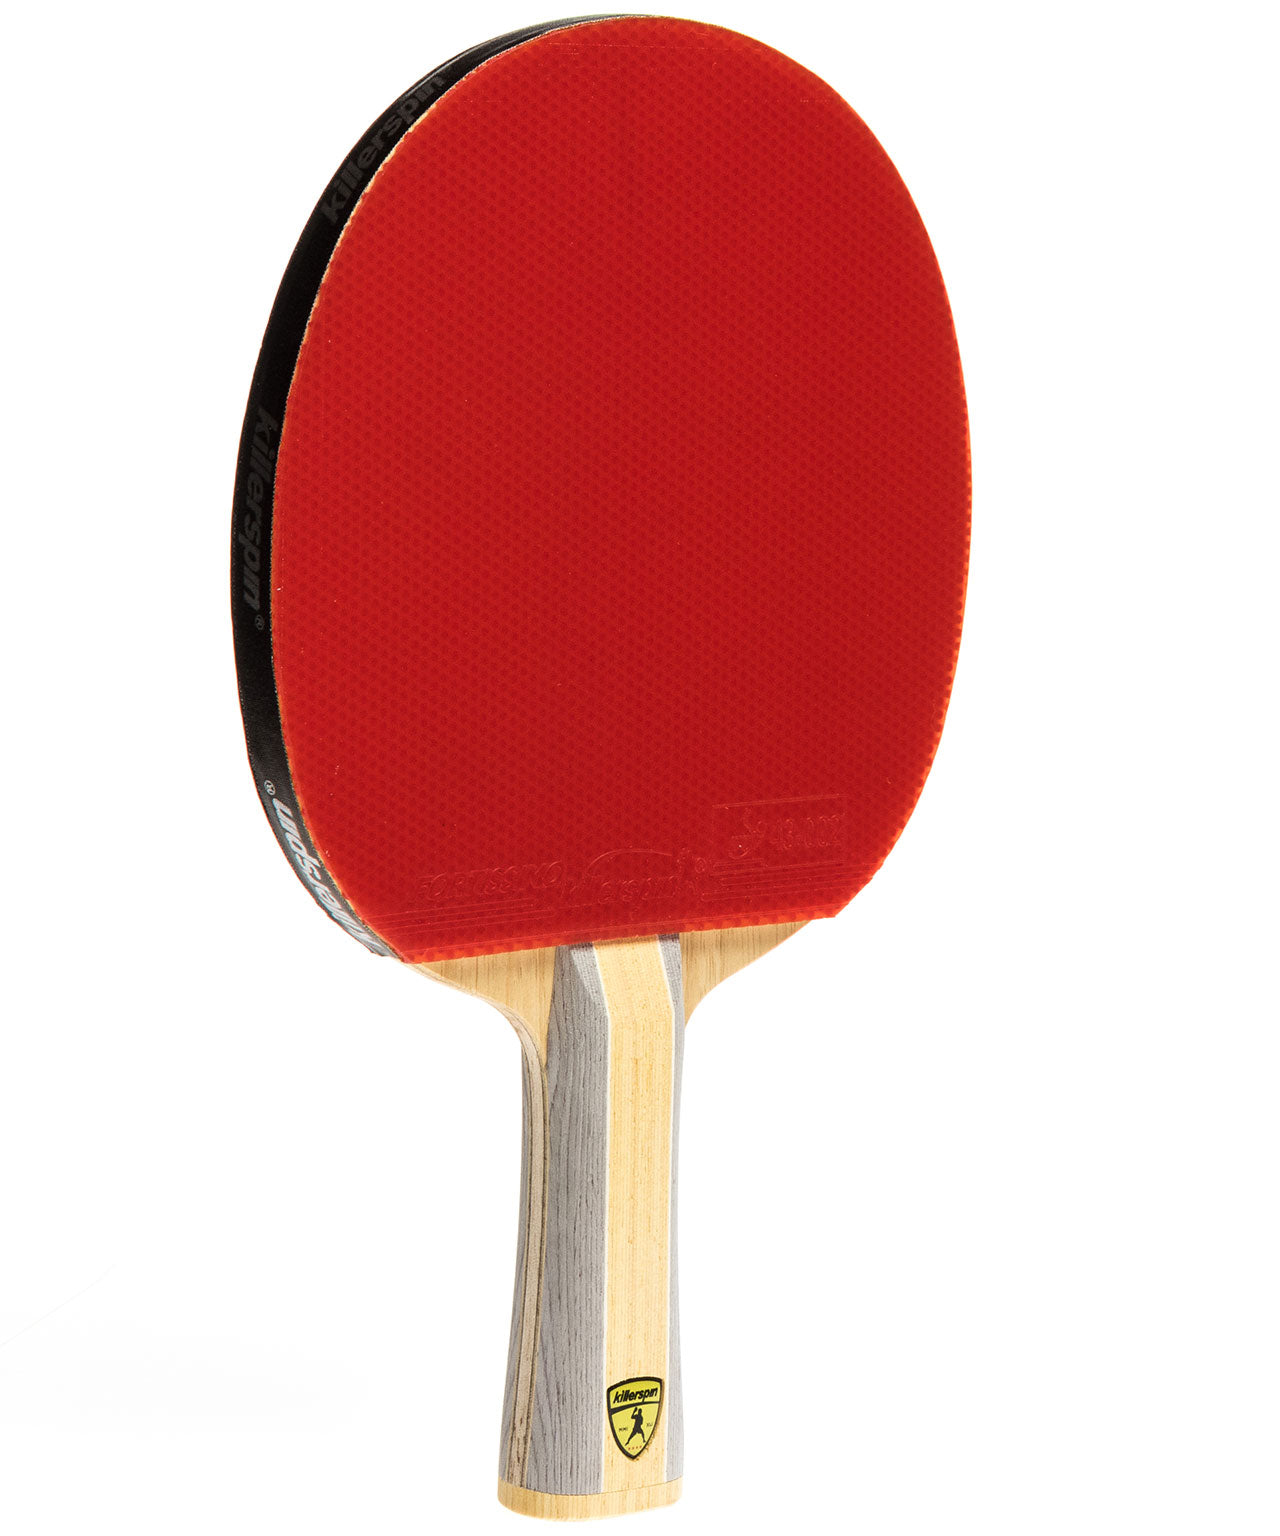 Killerspin Table Tennis Racket Diamond CQ Premium - Flared Red Fortissimo Rubber